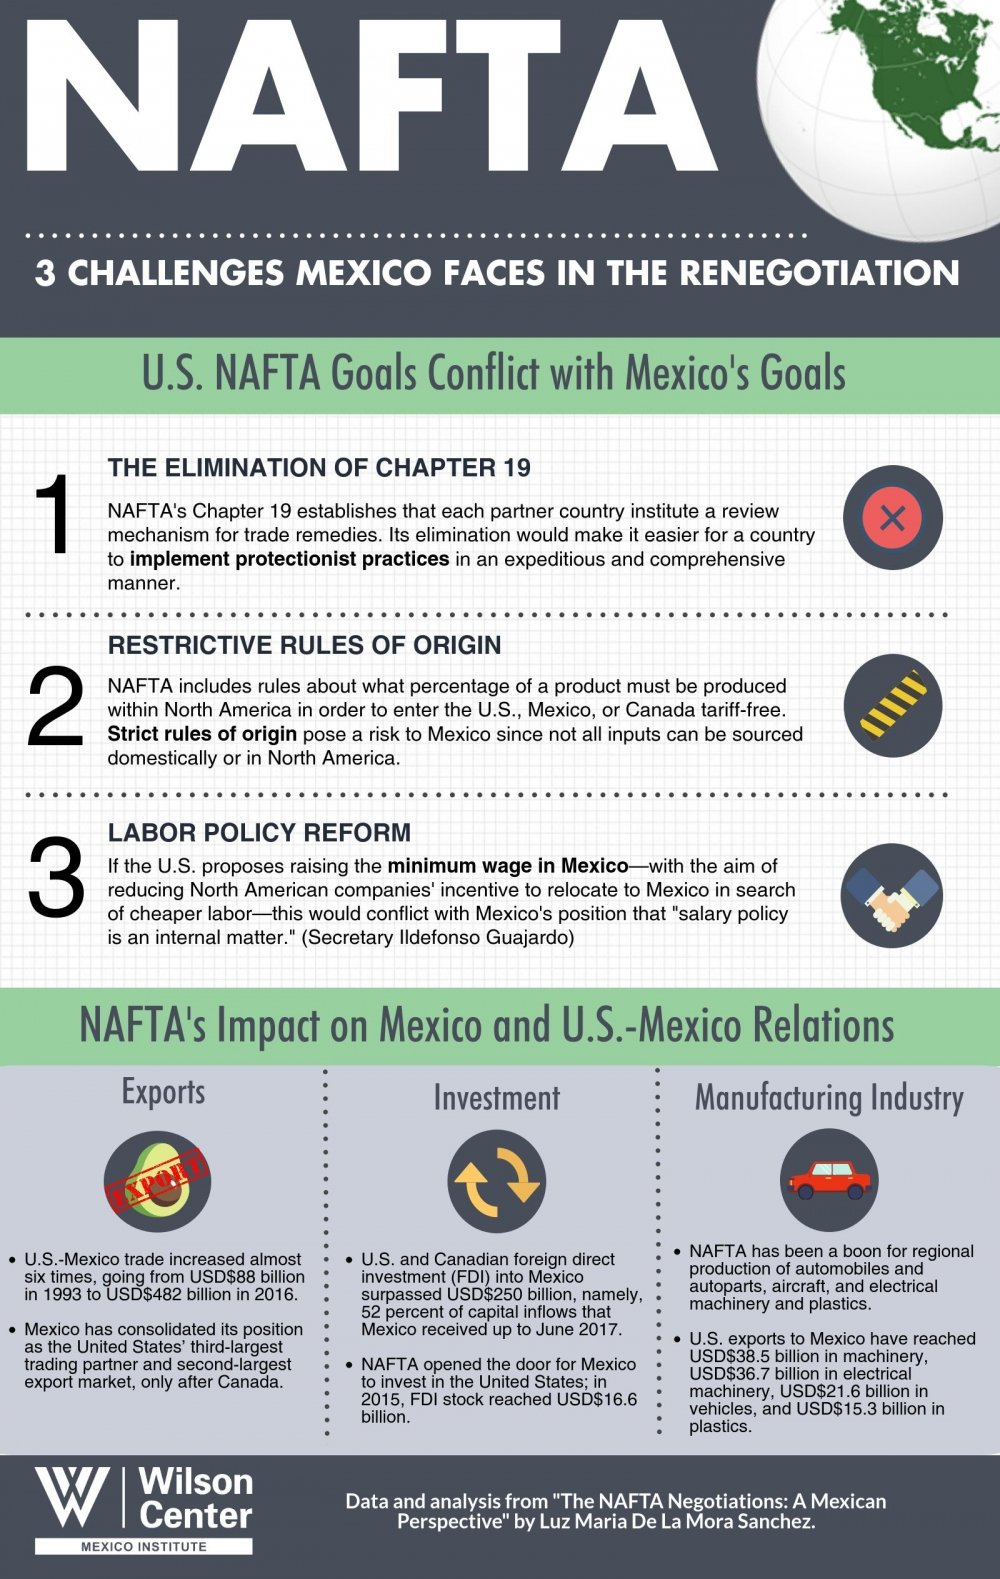 Infographic | NAFTA: 3 Challenges Mexico Faces in the Renegotiation